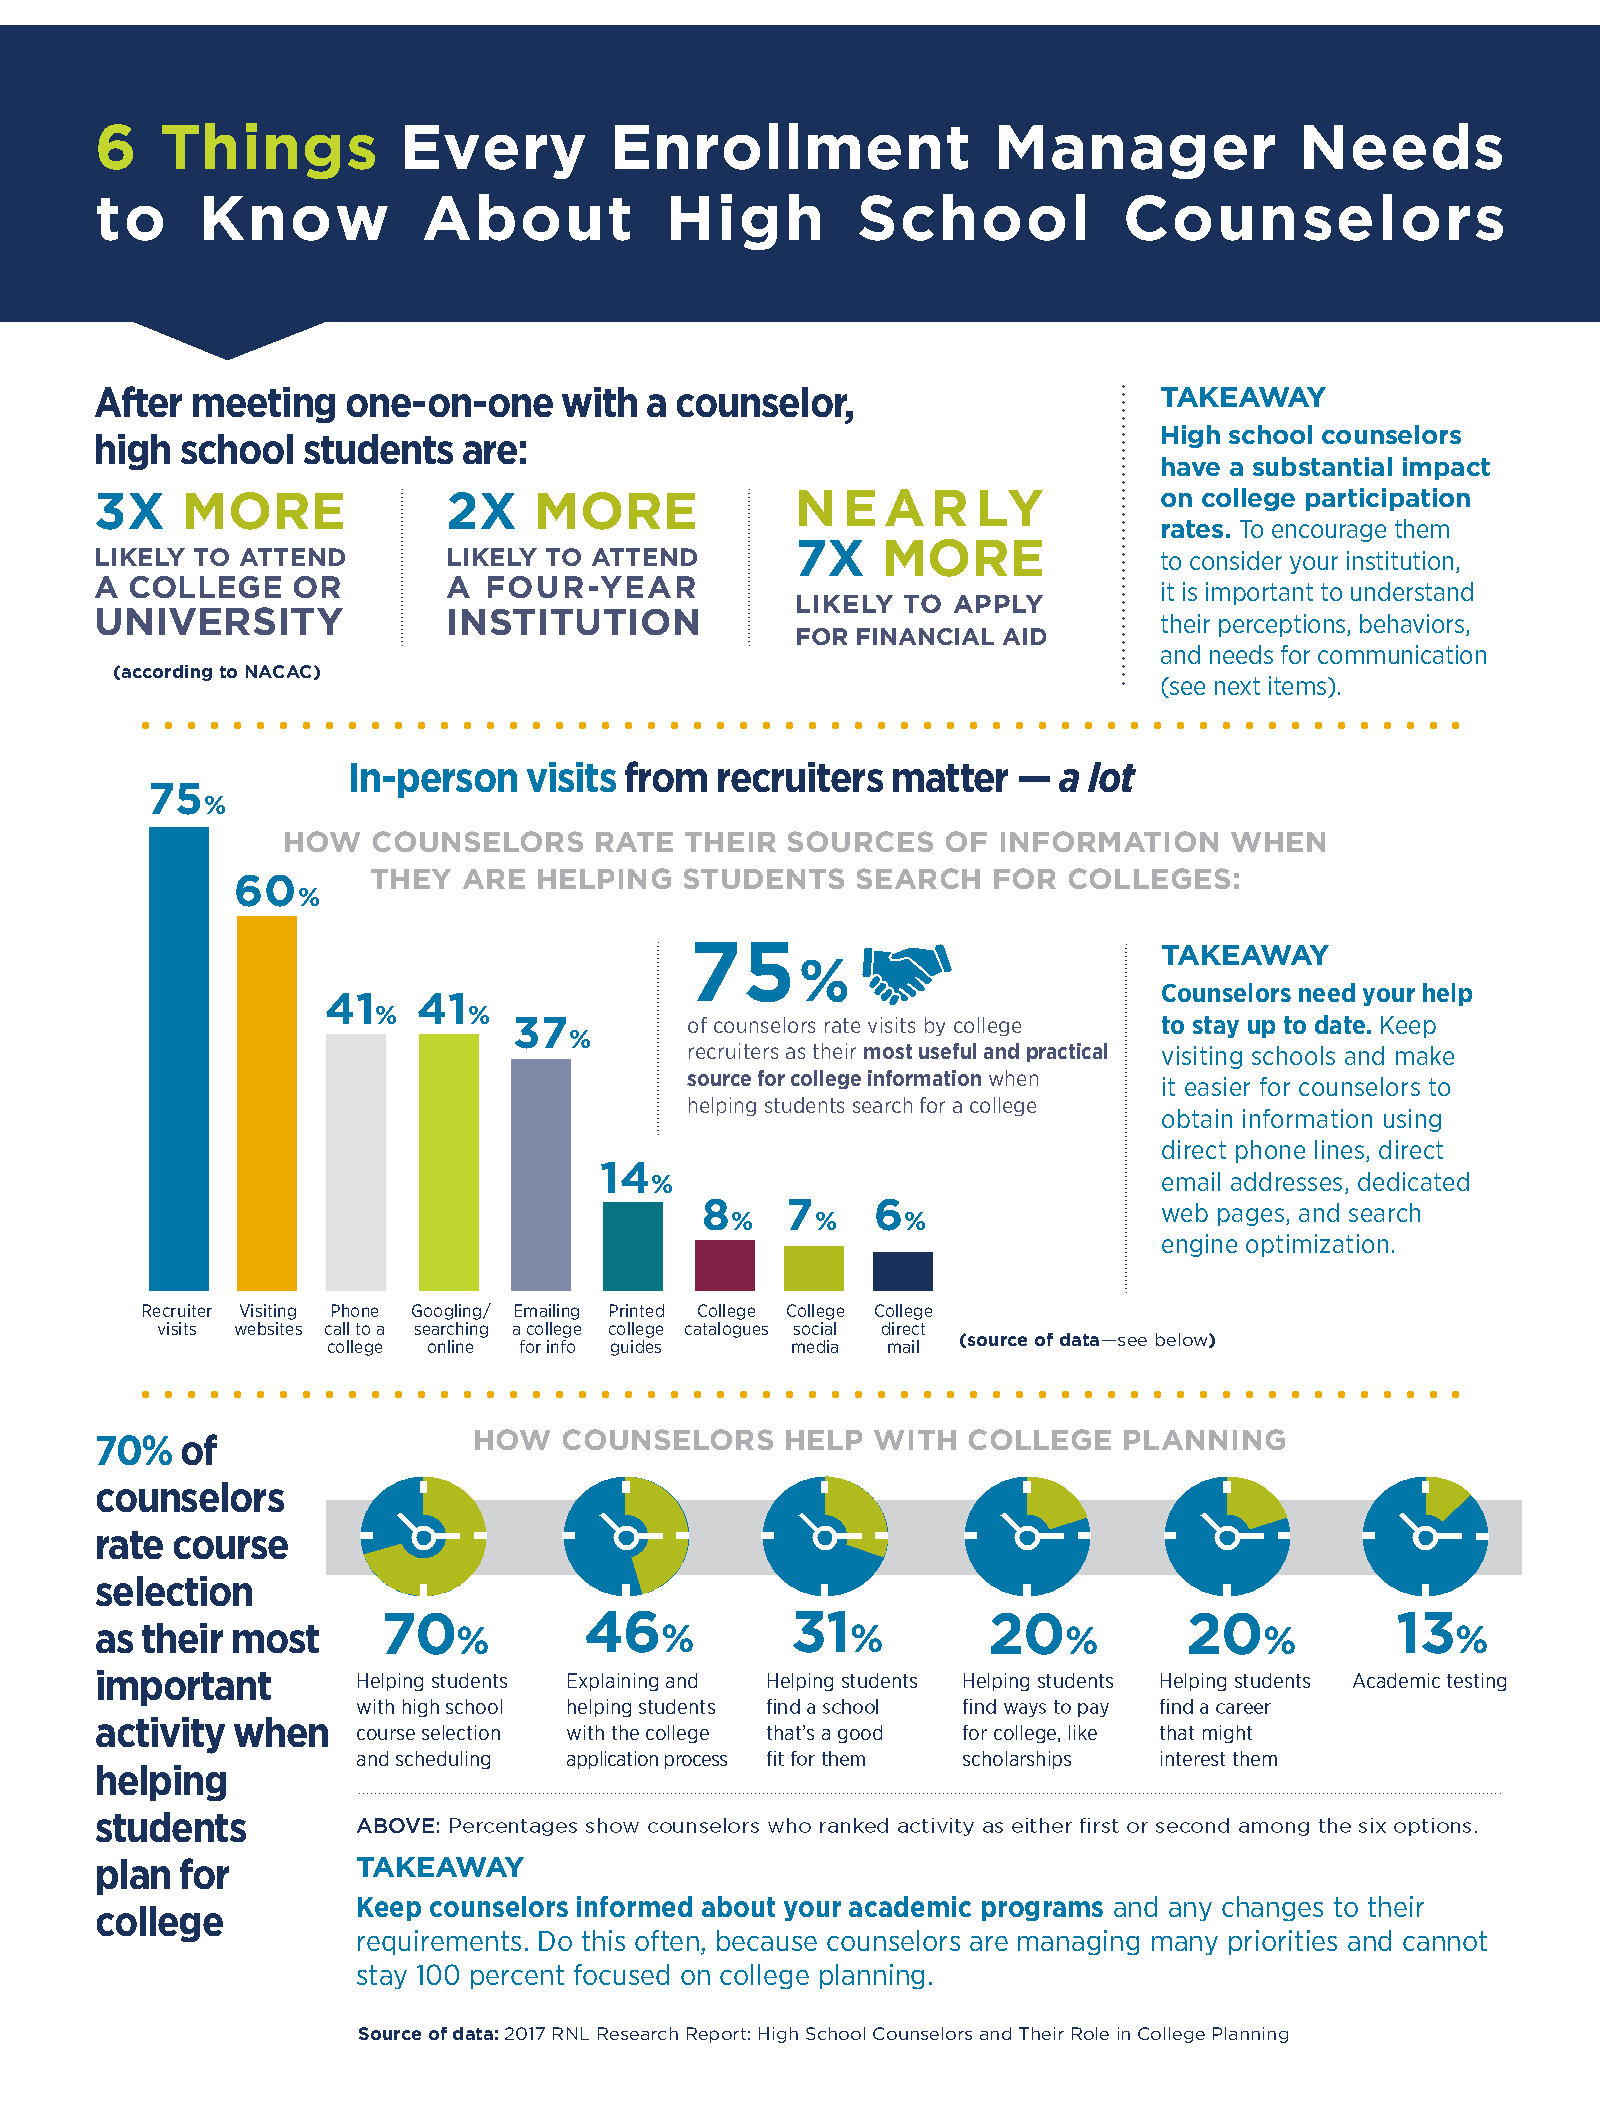 Click to download the full report on High School Counselors